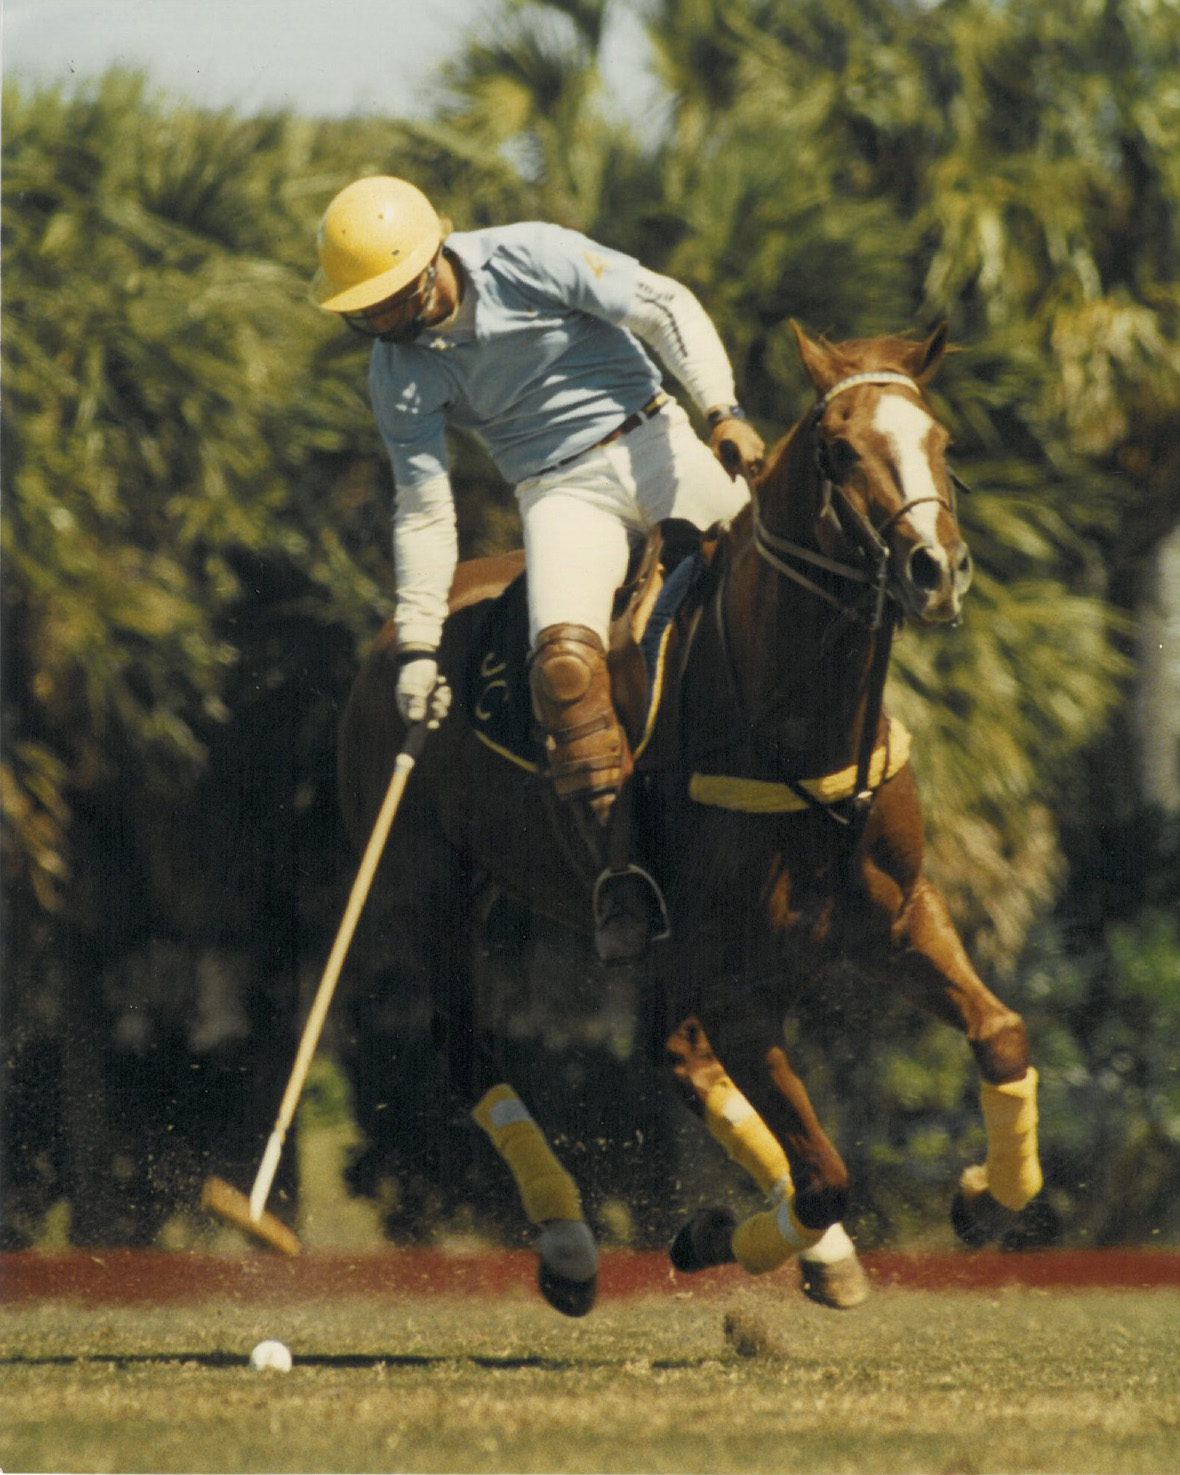 "Joey Riding one of his favorite polo horses, ""Shogun"", playing the 26 goal Gold cup"